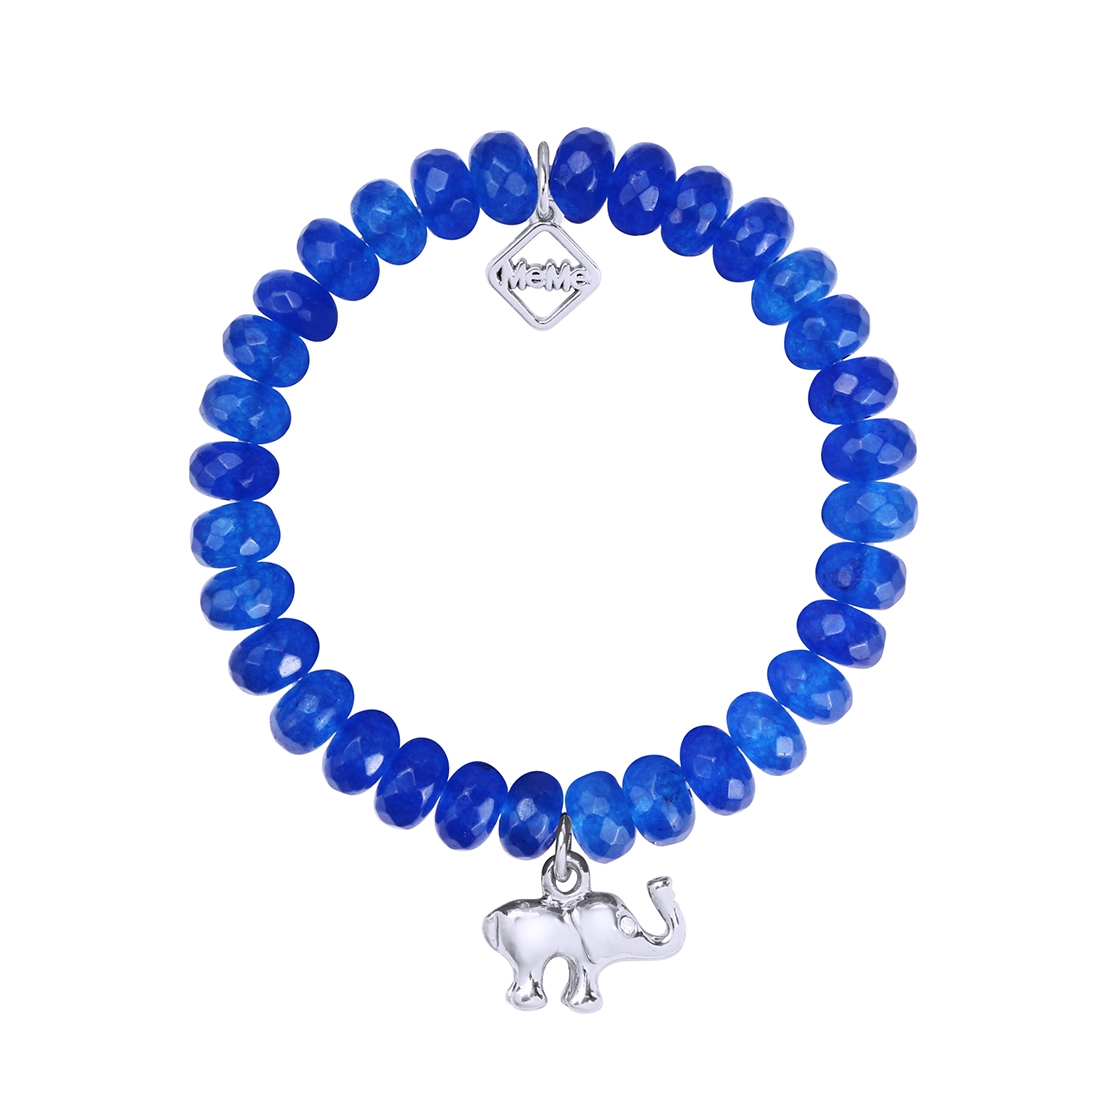 MEME LONDON GOOD LUCK TRUNK - DEEP BLUE WITH WHITE GOLD